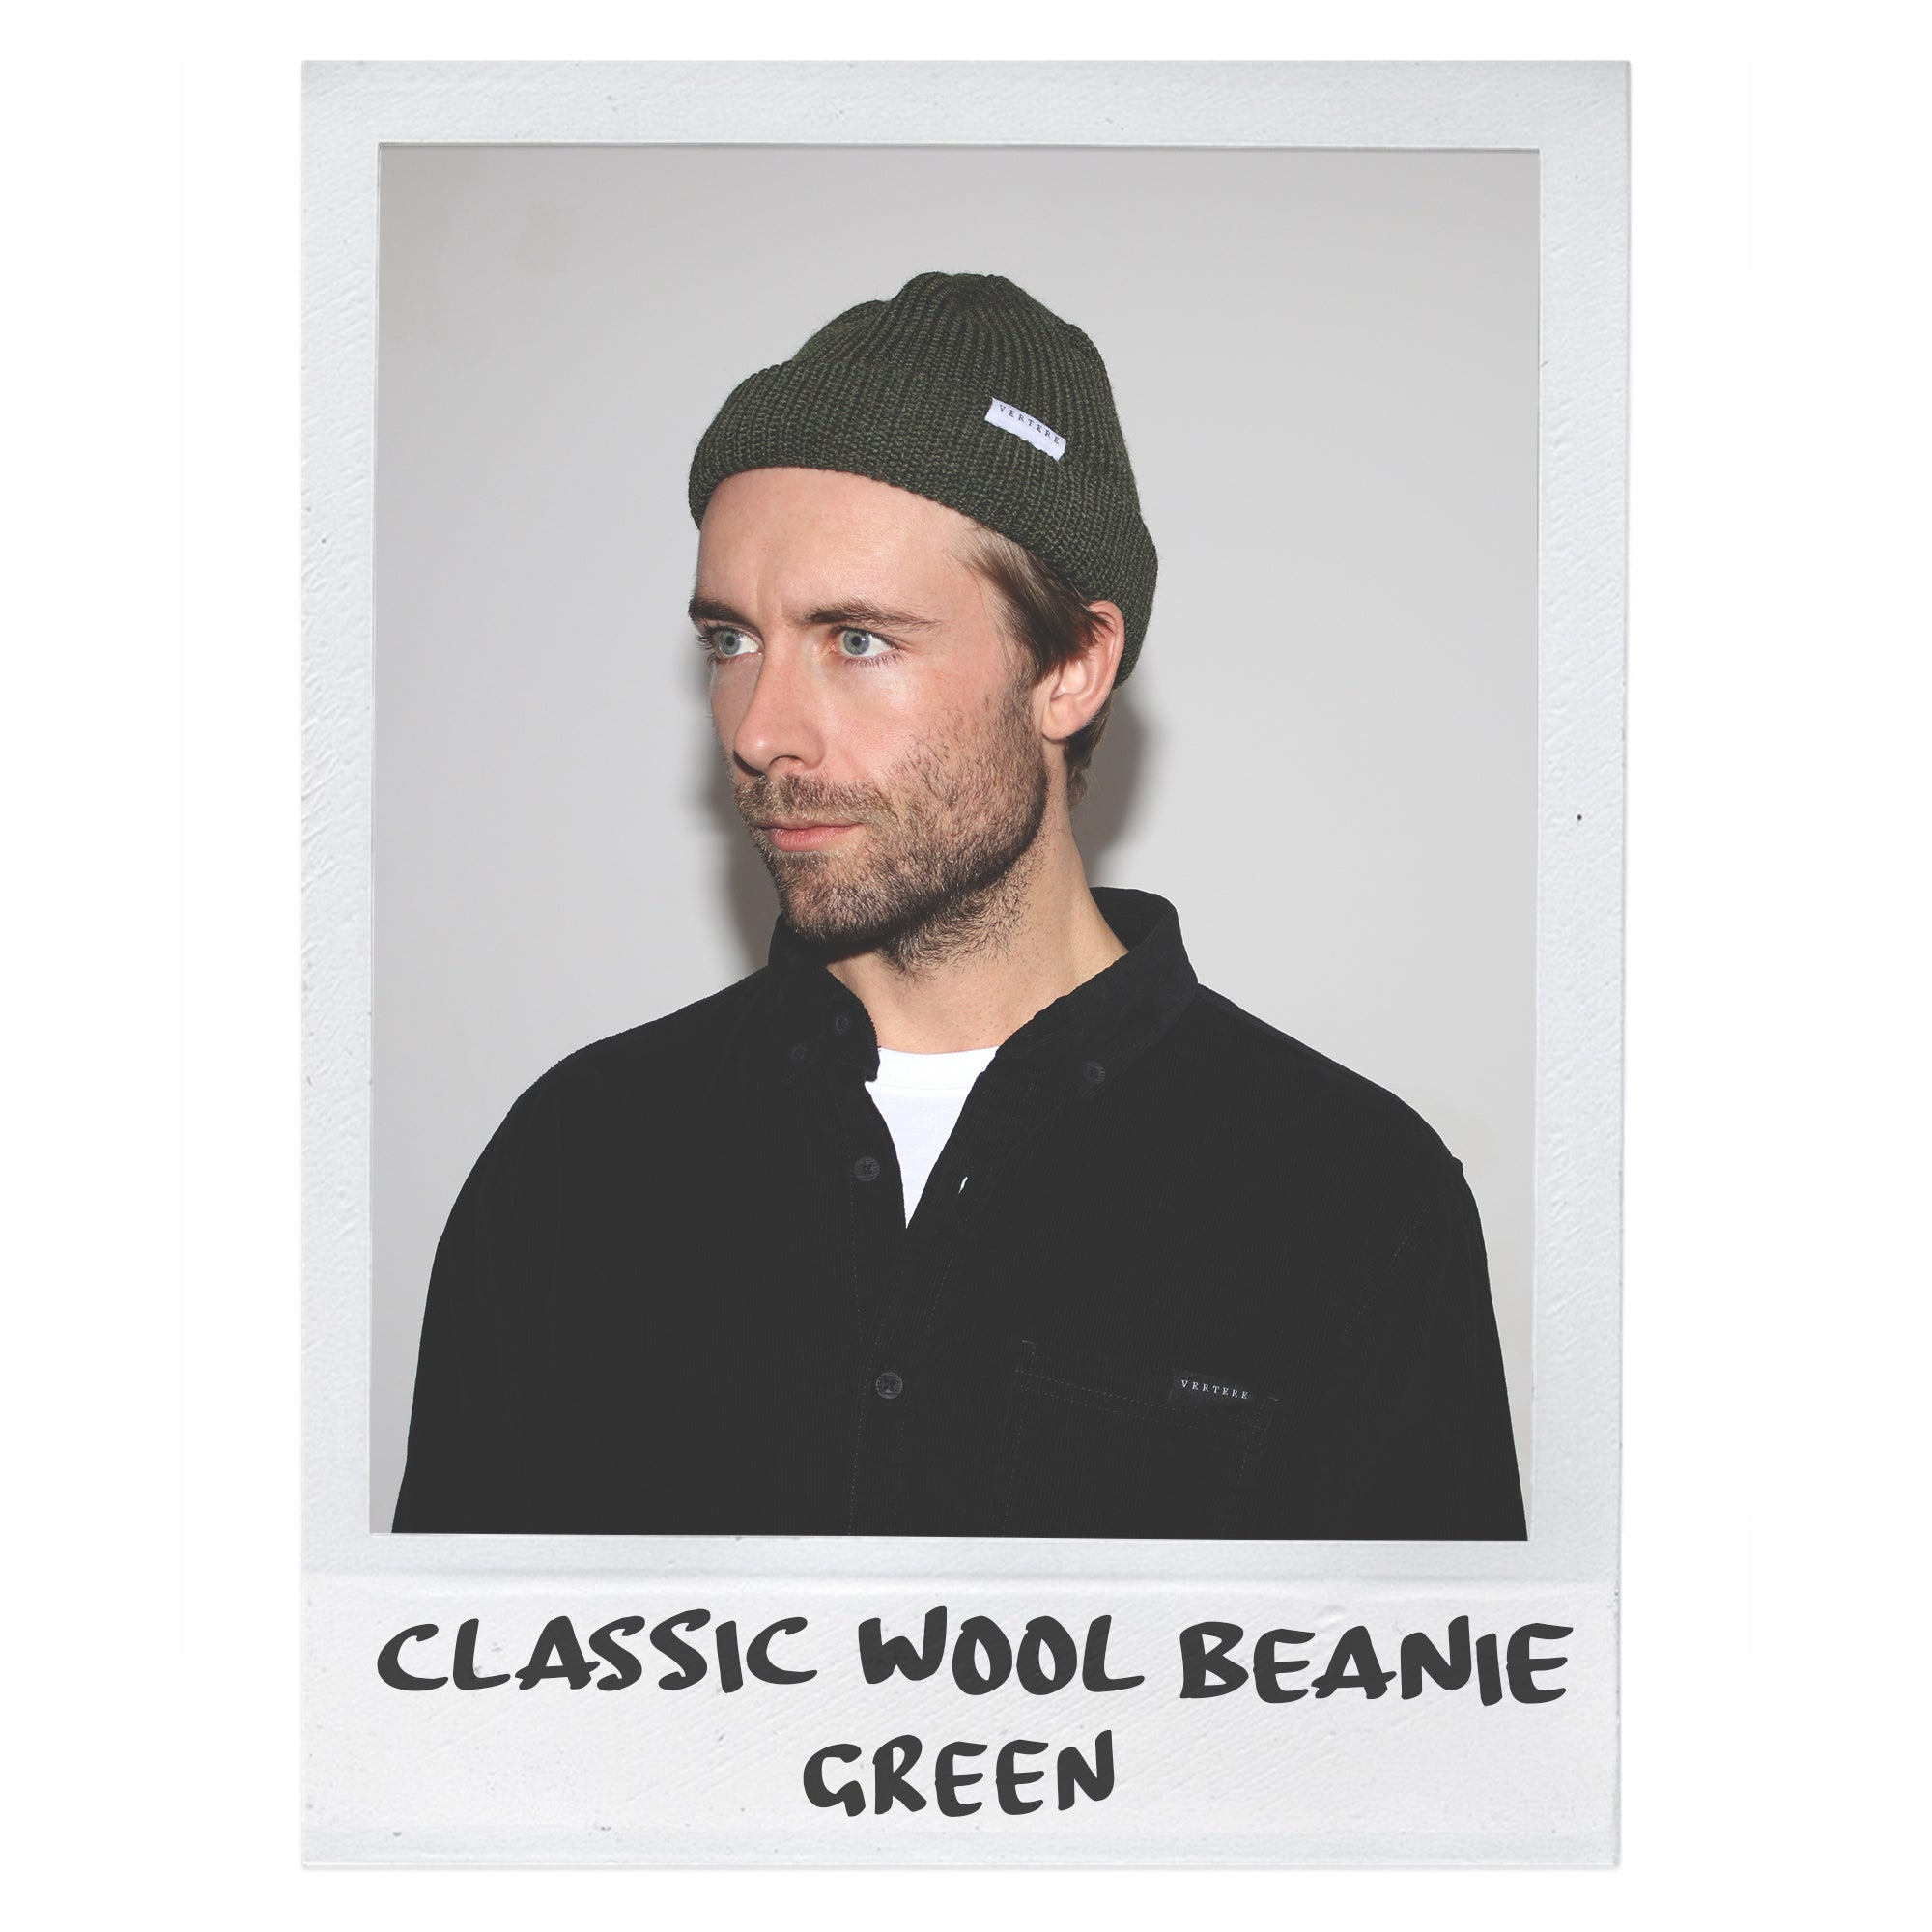 CLASSIC WOOL BEANIE - DARK-GREEN